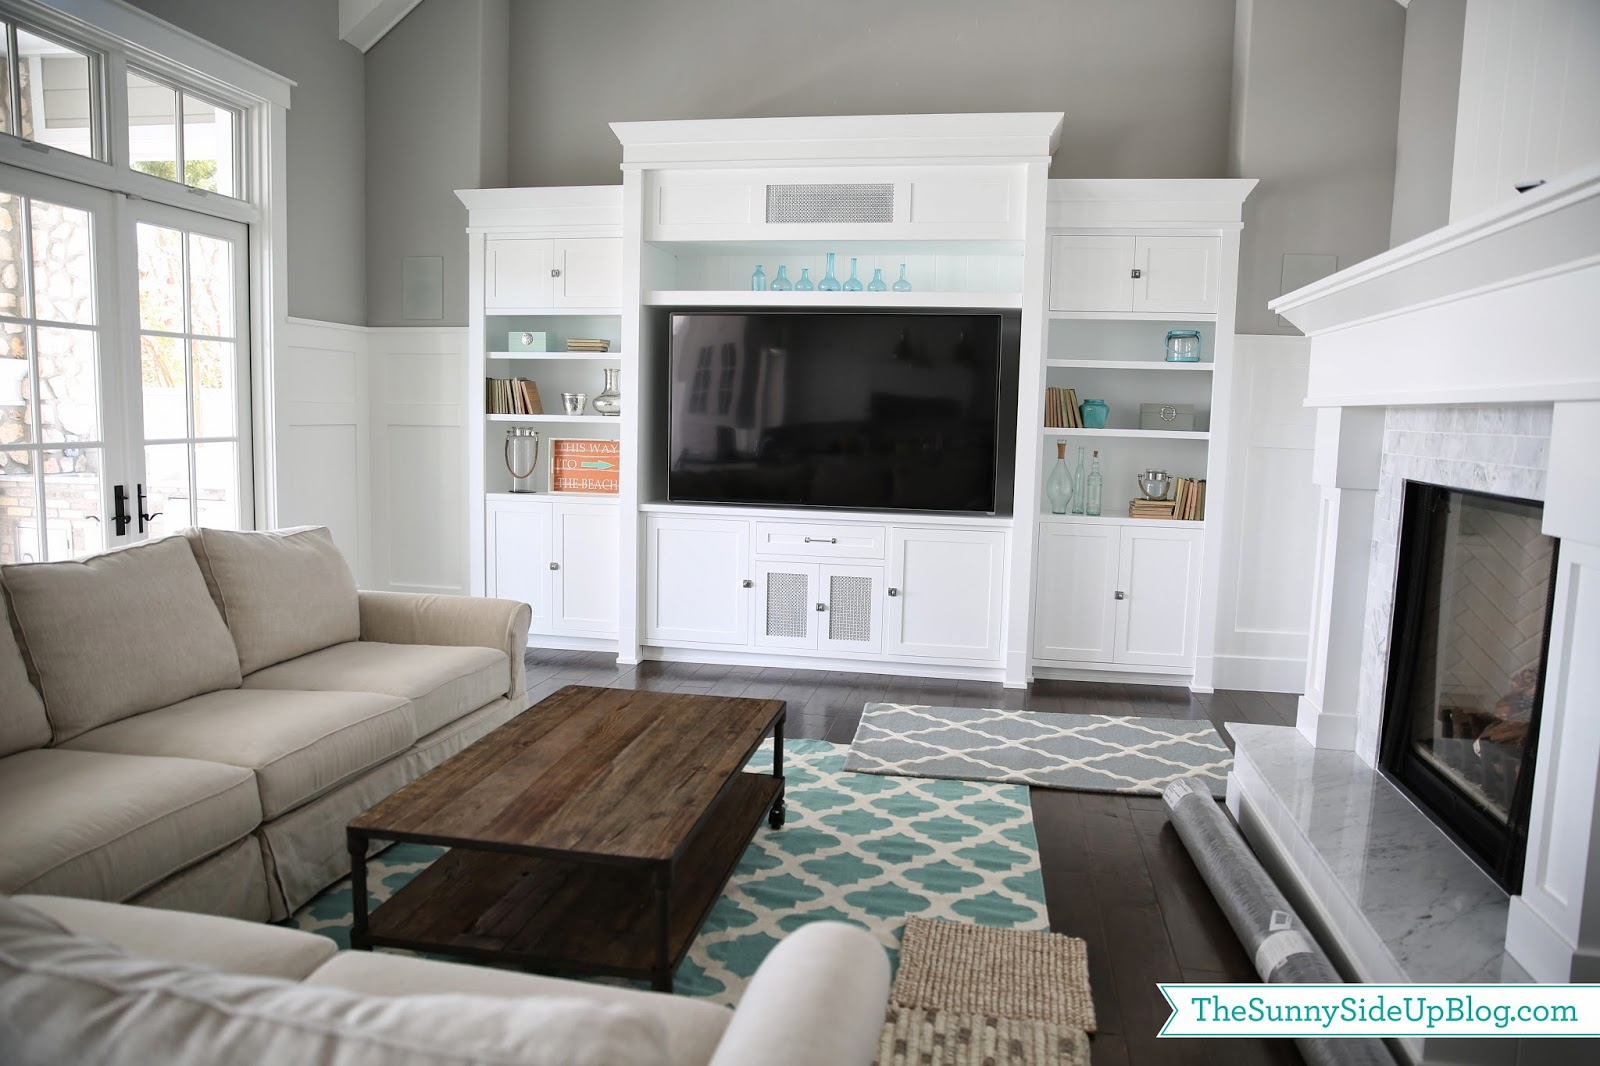 Living Room Pottery Barn Family Rooms family room decor update the sunny side up blog because blue patterns werent working for me i went to restoration and pottery barn pulled some neutral that might work